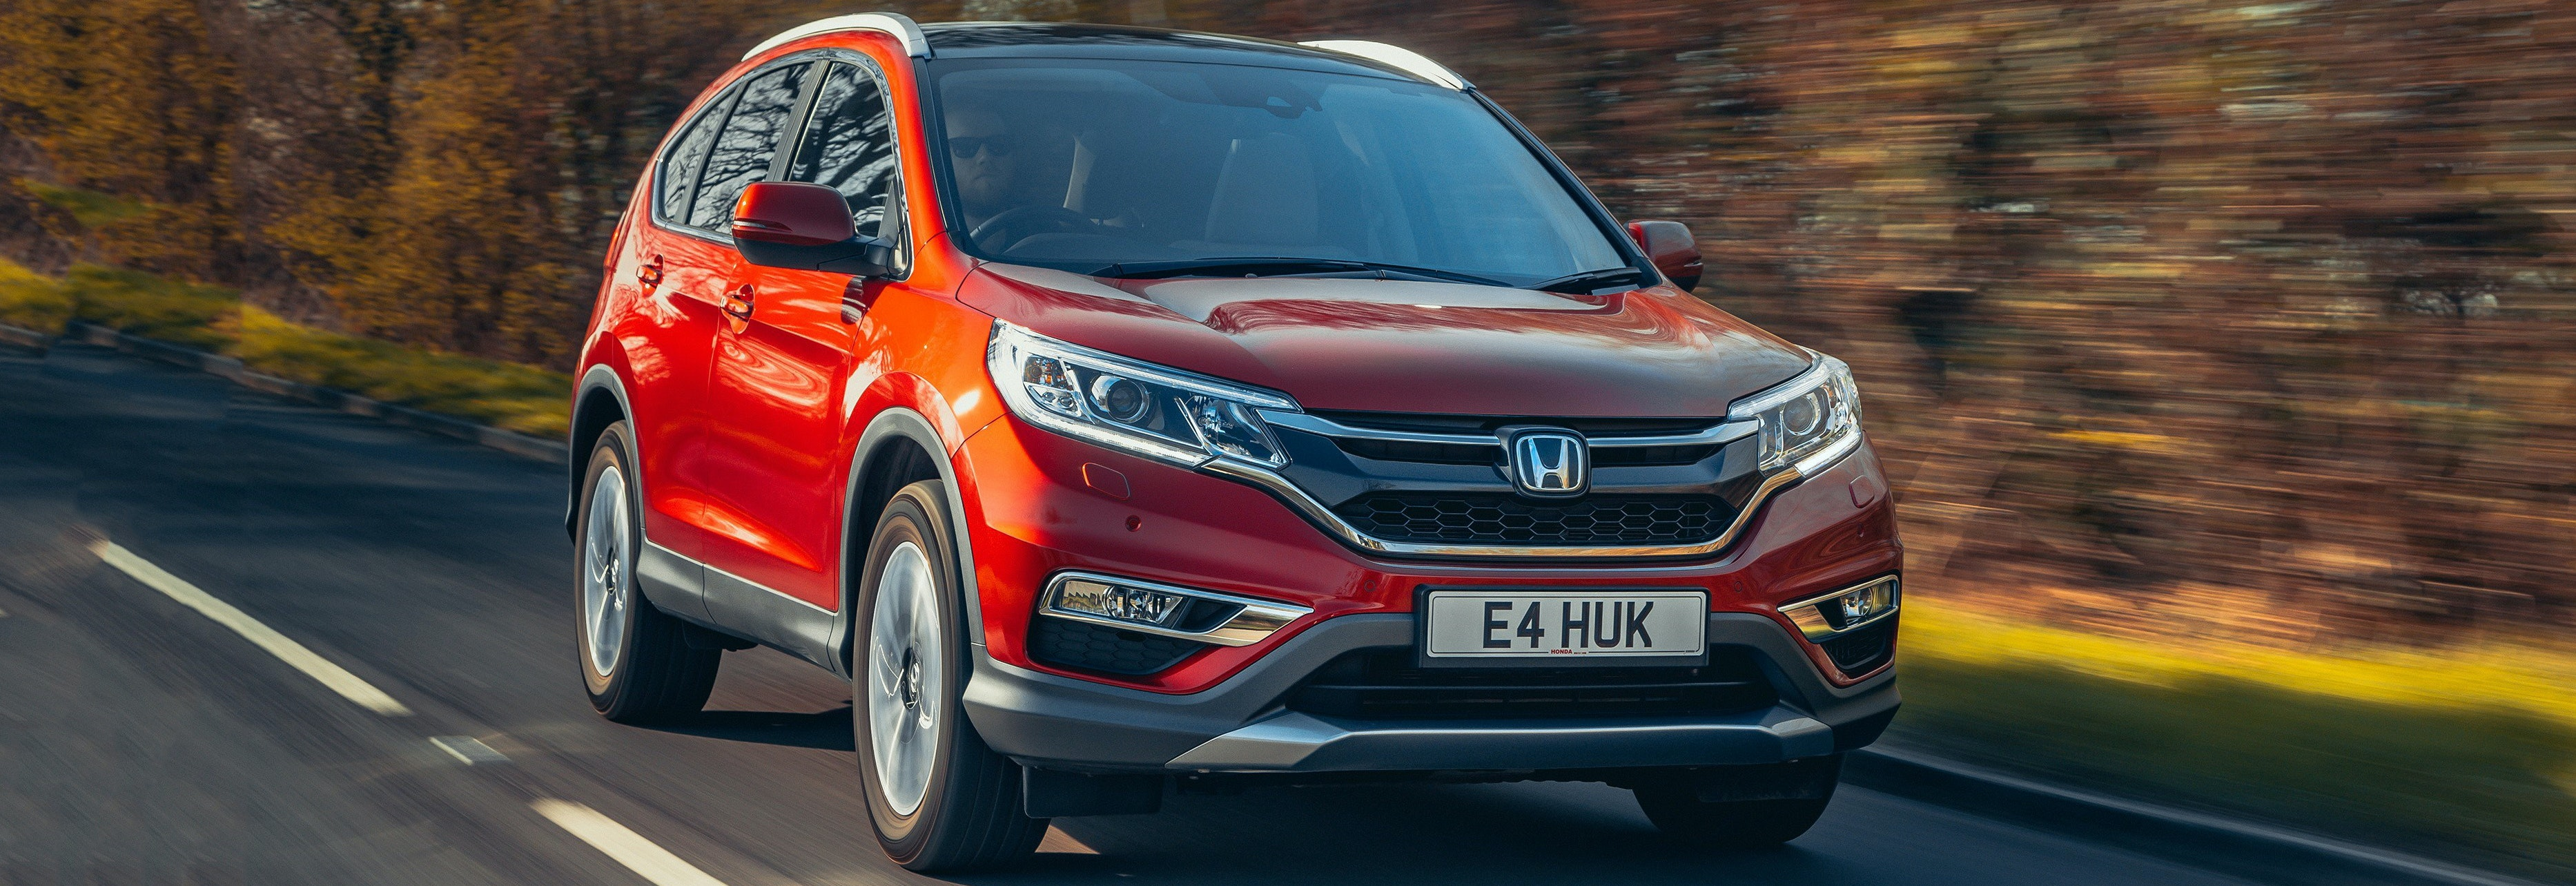 honda cr v red driving front